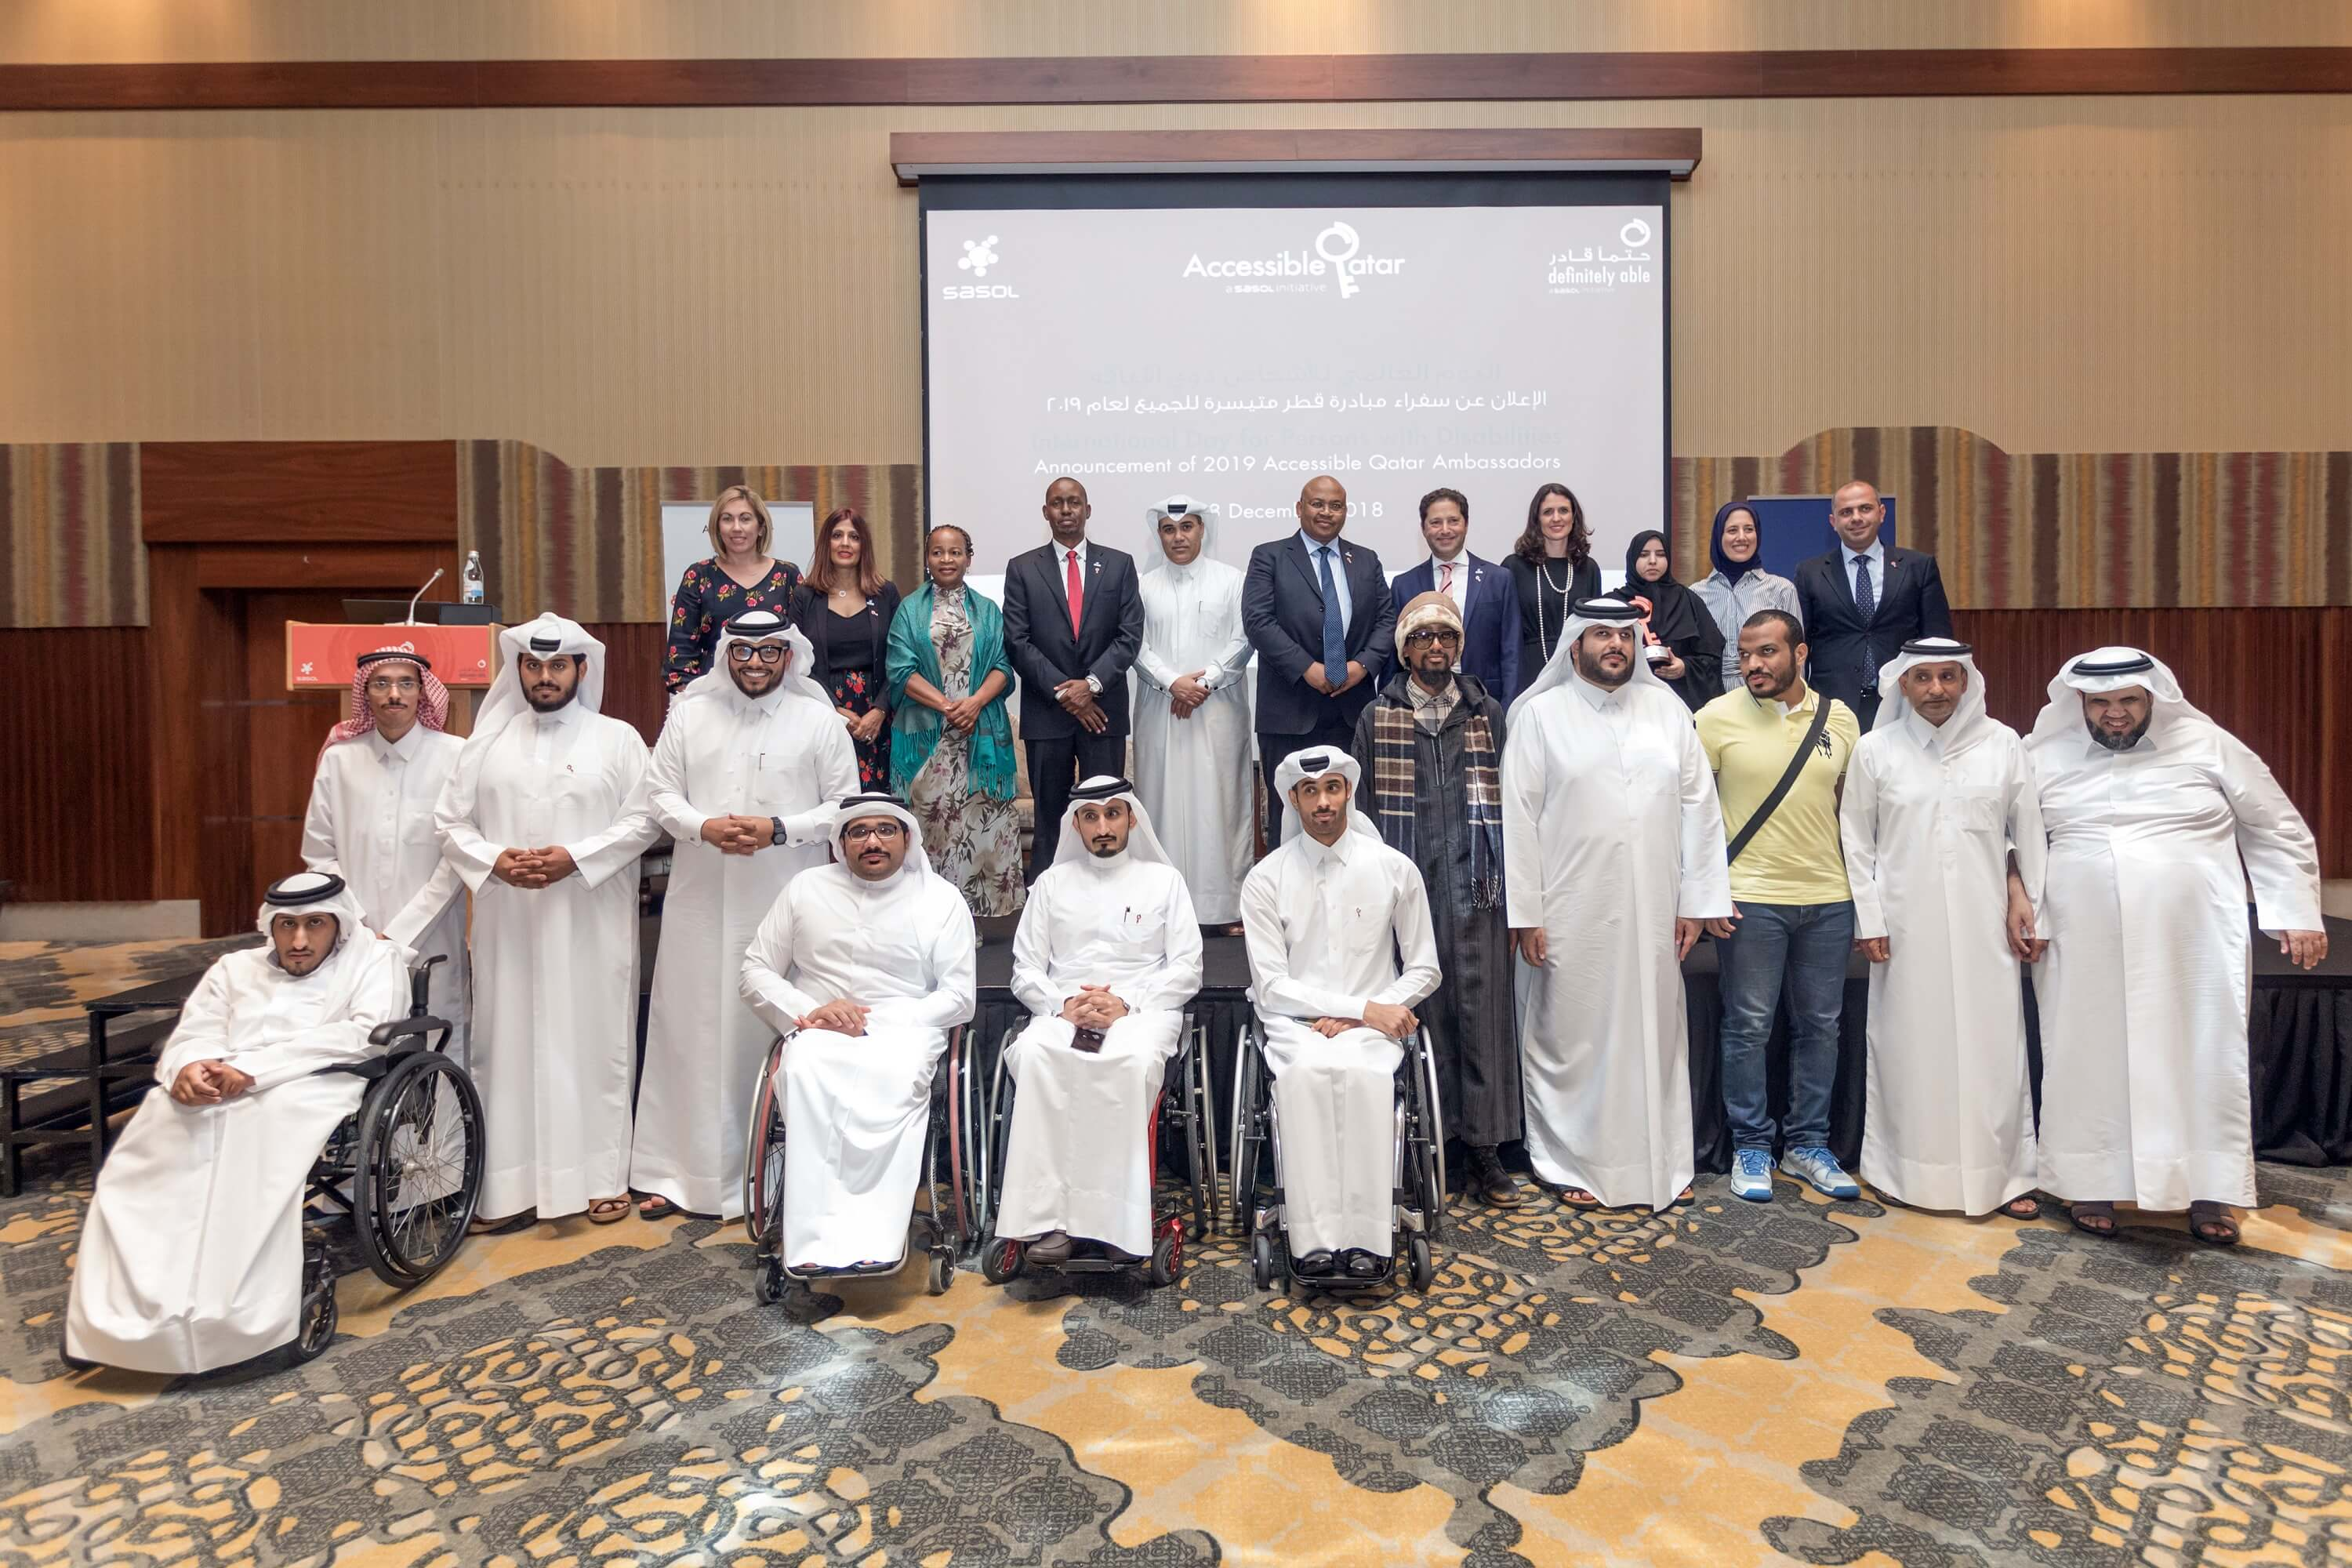 Photo of Sasol names three ambassadors for its Accessible Qatar initiative for 2019